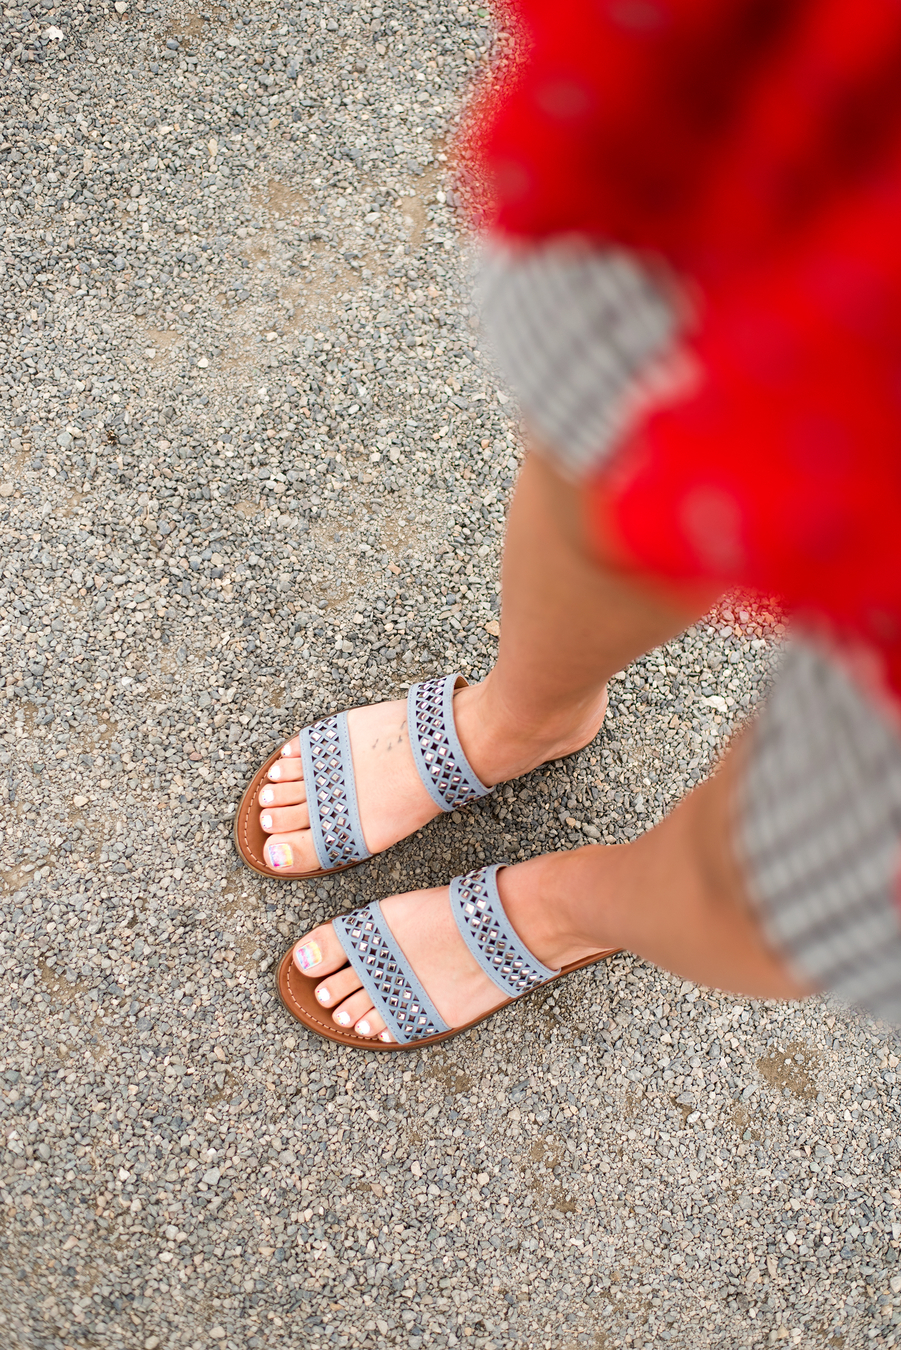 diary of this girl, seattle fashion blogger, fourth of july, sandal weather